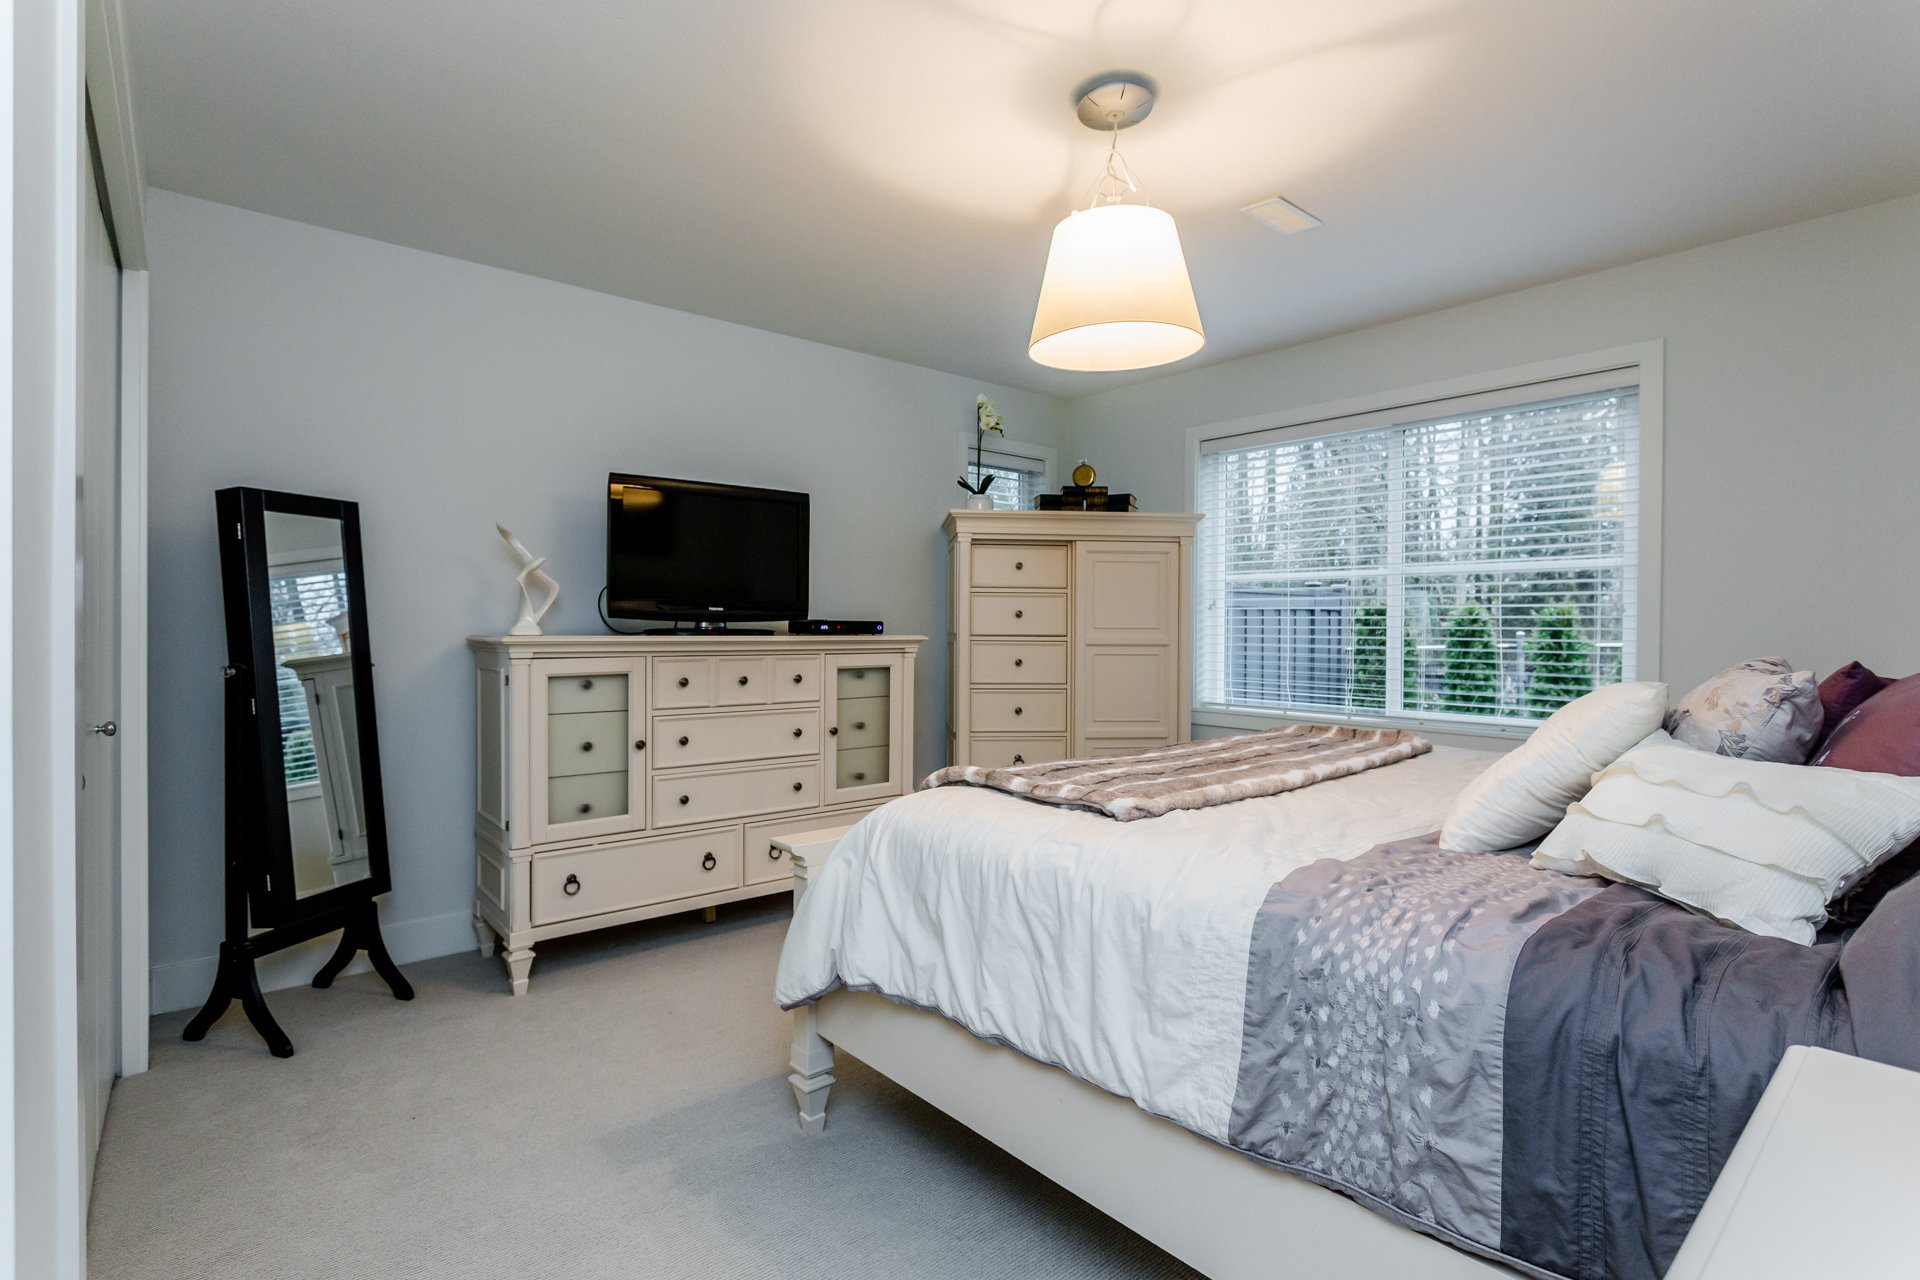 """Photo 36: Photos: 8 8217 204B Street in Langley: Willoughby Heights Townhouse for sale in """"EVERLY GREEN"""" : MLS®# R2236678"""